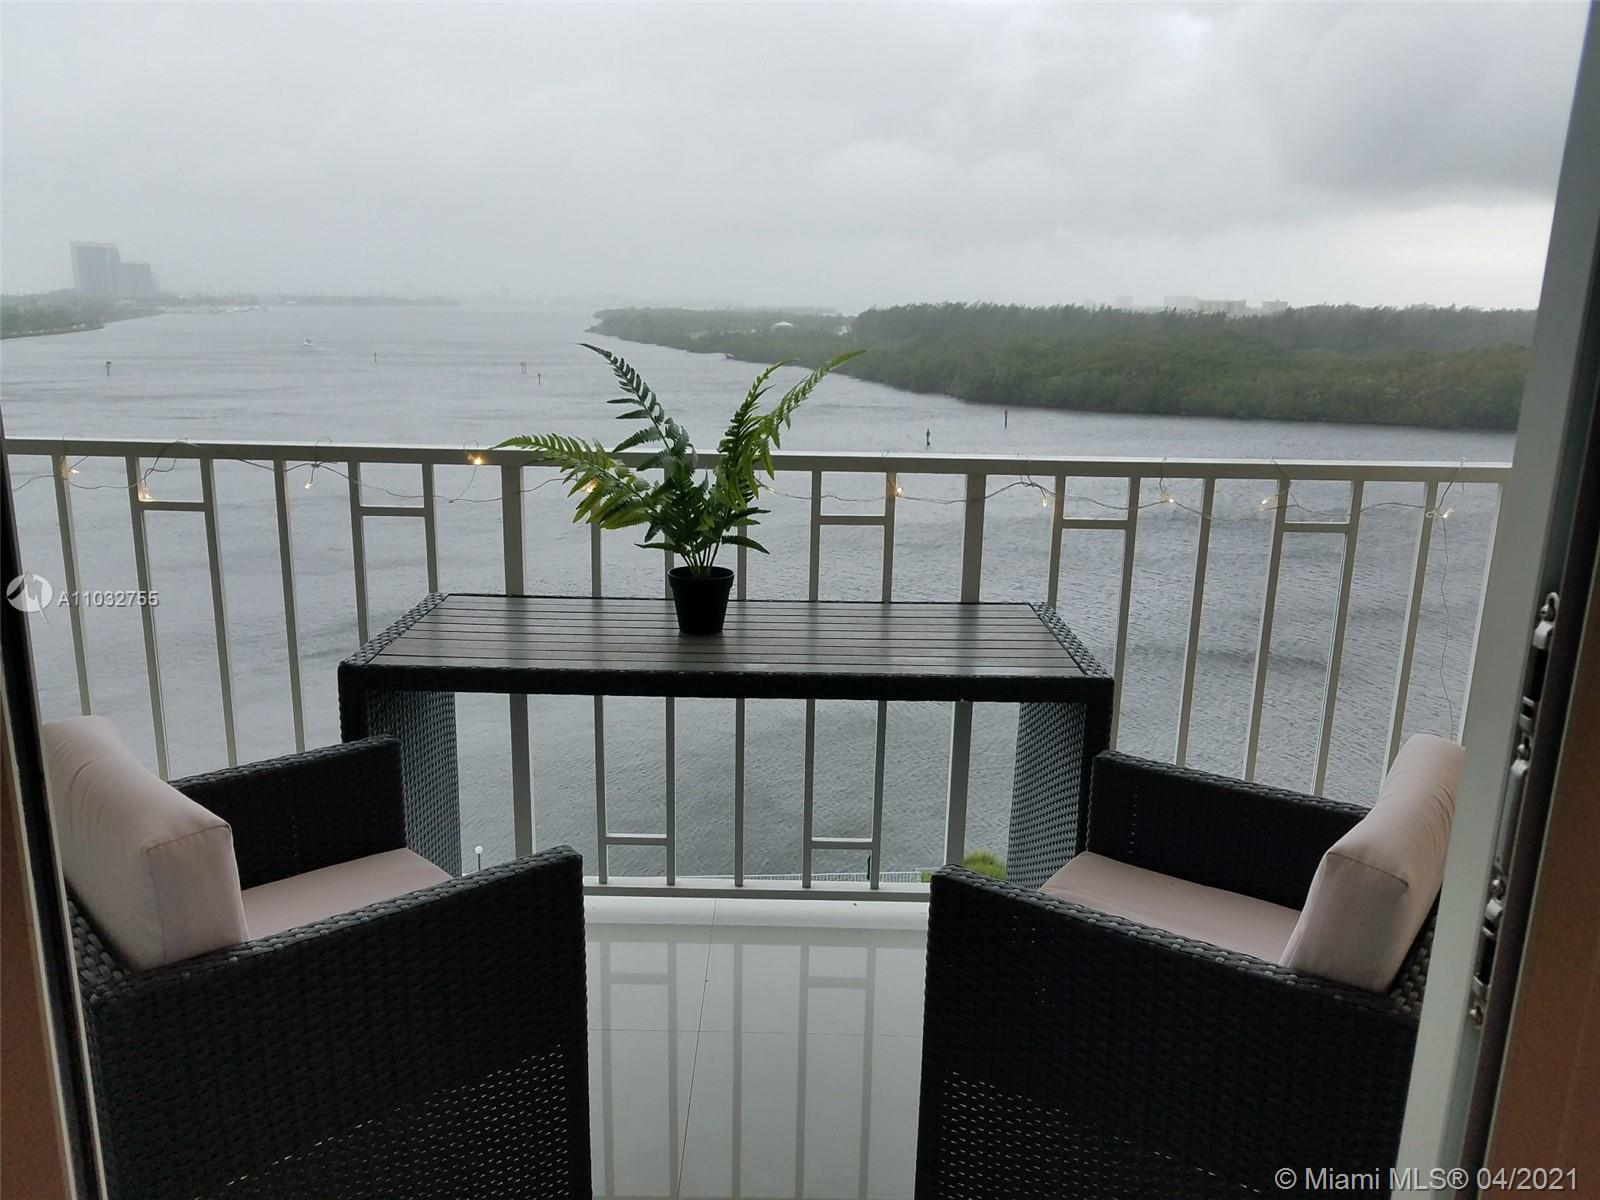 Beauty and very well maintained unit of 1 bed / 1 1.5 bath with MILLION DOLLARS VIEW from windows an